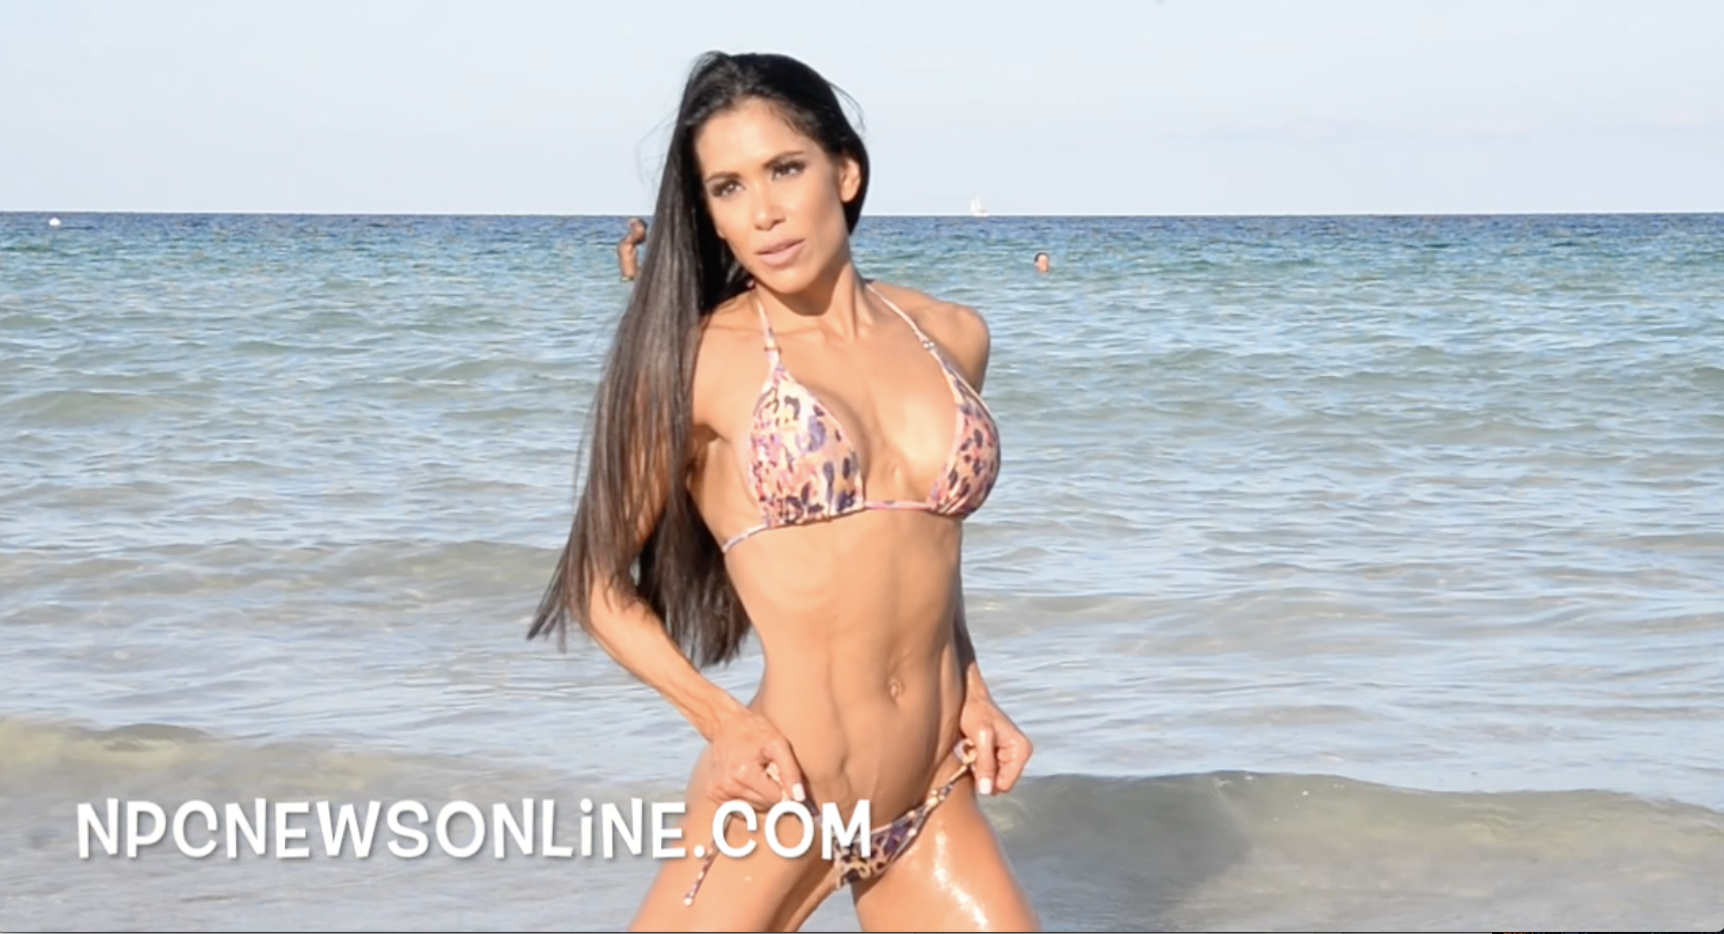 J.M. Manion South Beach Miami Shoot: Behind The Scenes Video With IFBB Bikini Pro Jen Ronzitti.